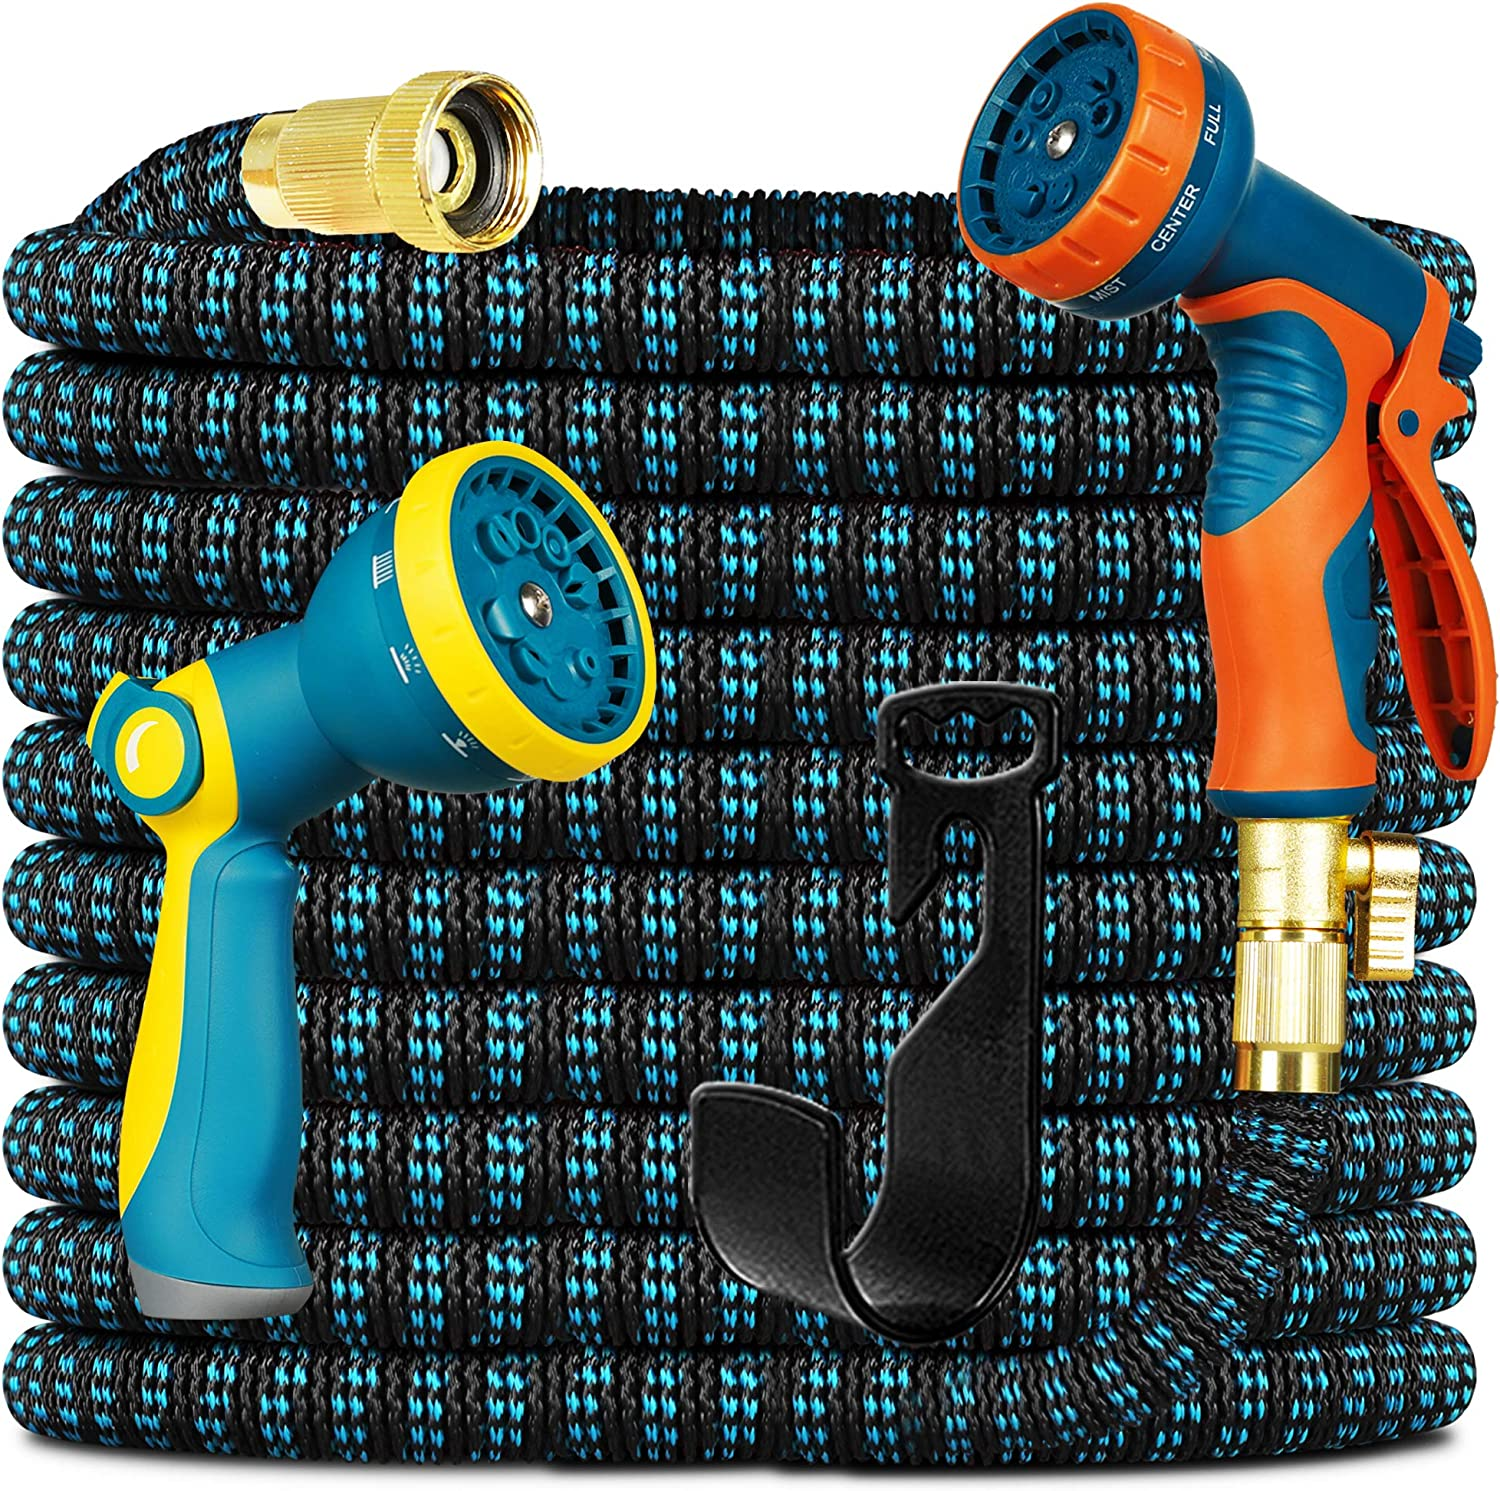 Knoikos Expandable Garden Hose 100ft - Expanding Water Hose with 10 Function Nozzle 2 Pack, Easy Storage Garden Water Hose for Yard Hose Car Wash Hose Pipe